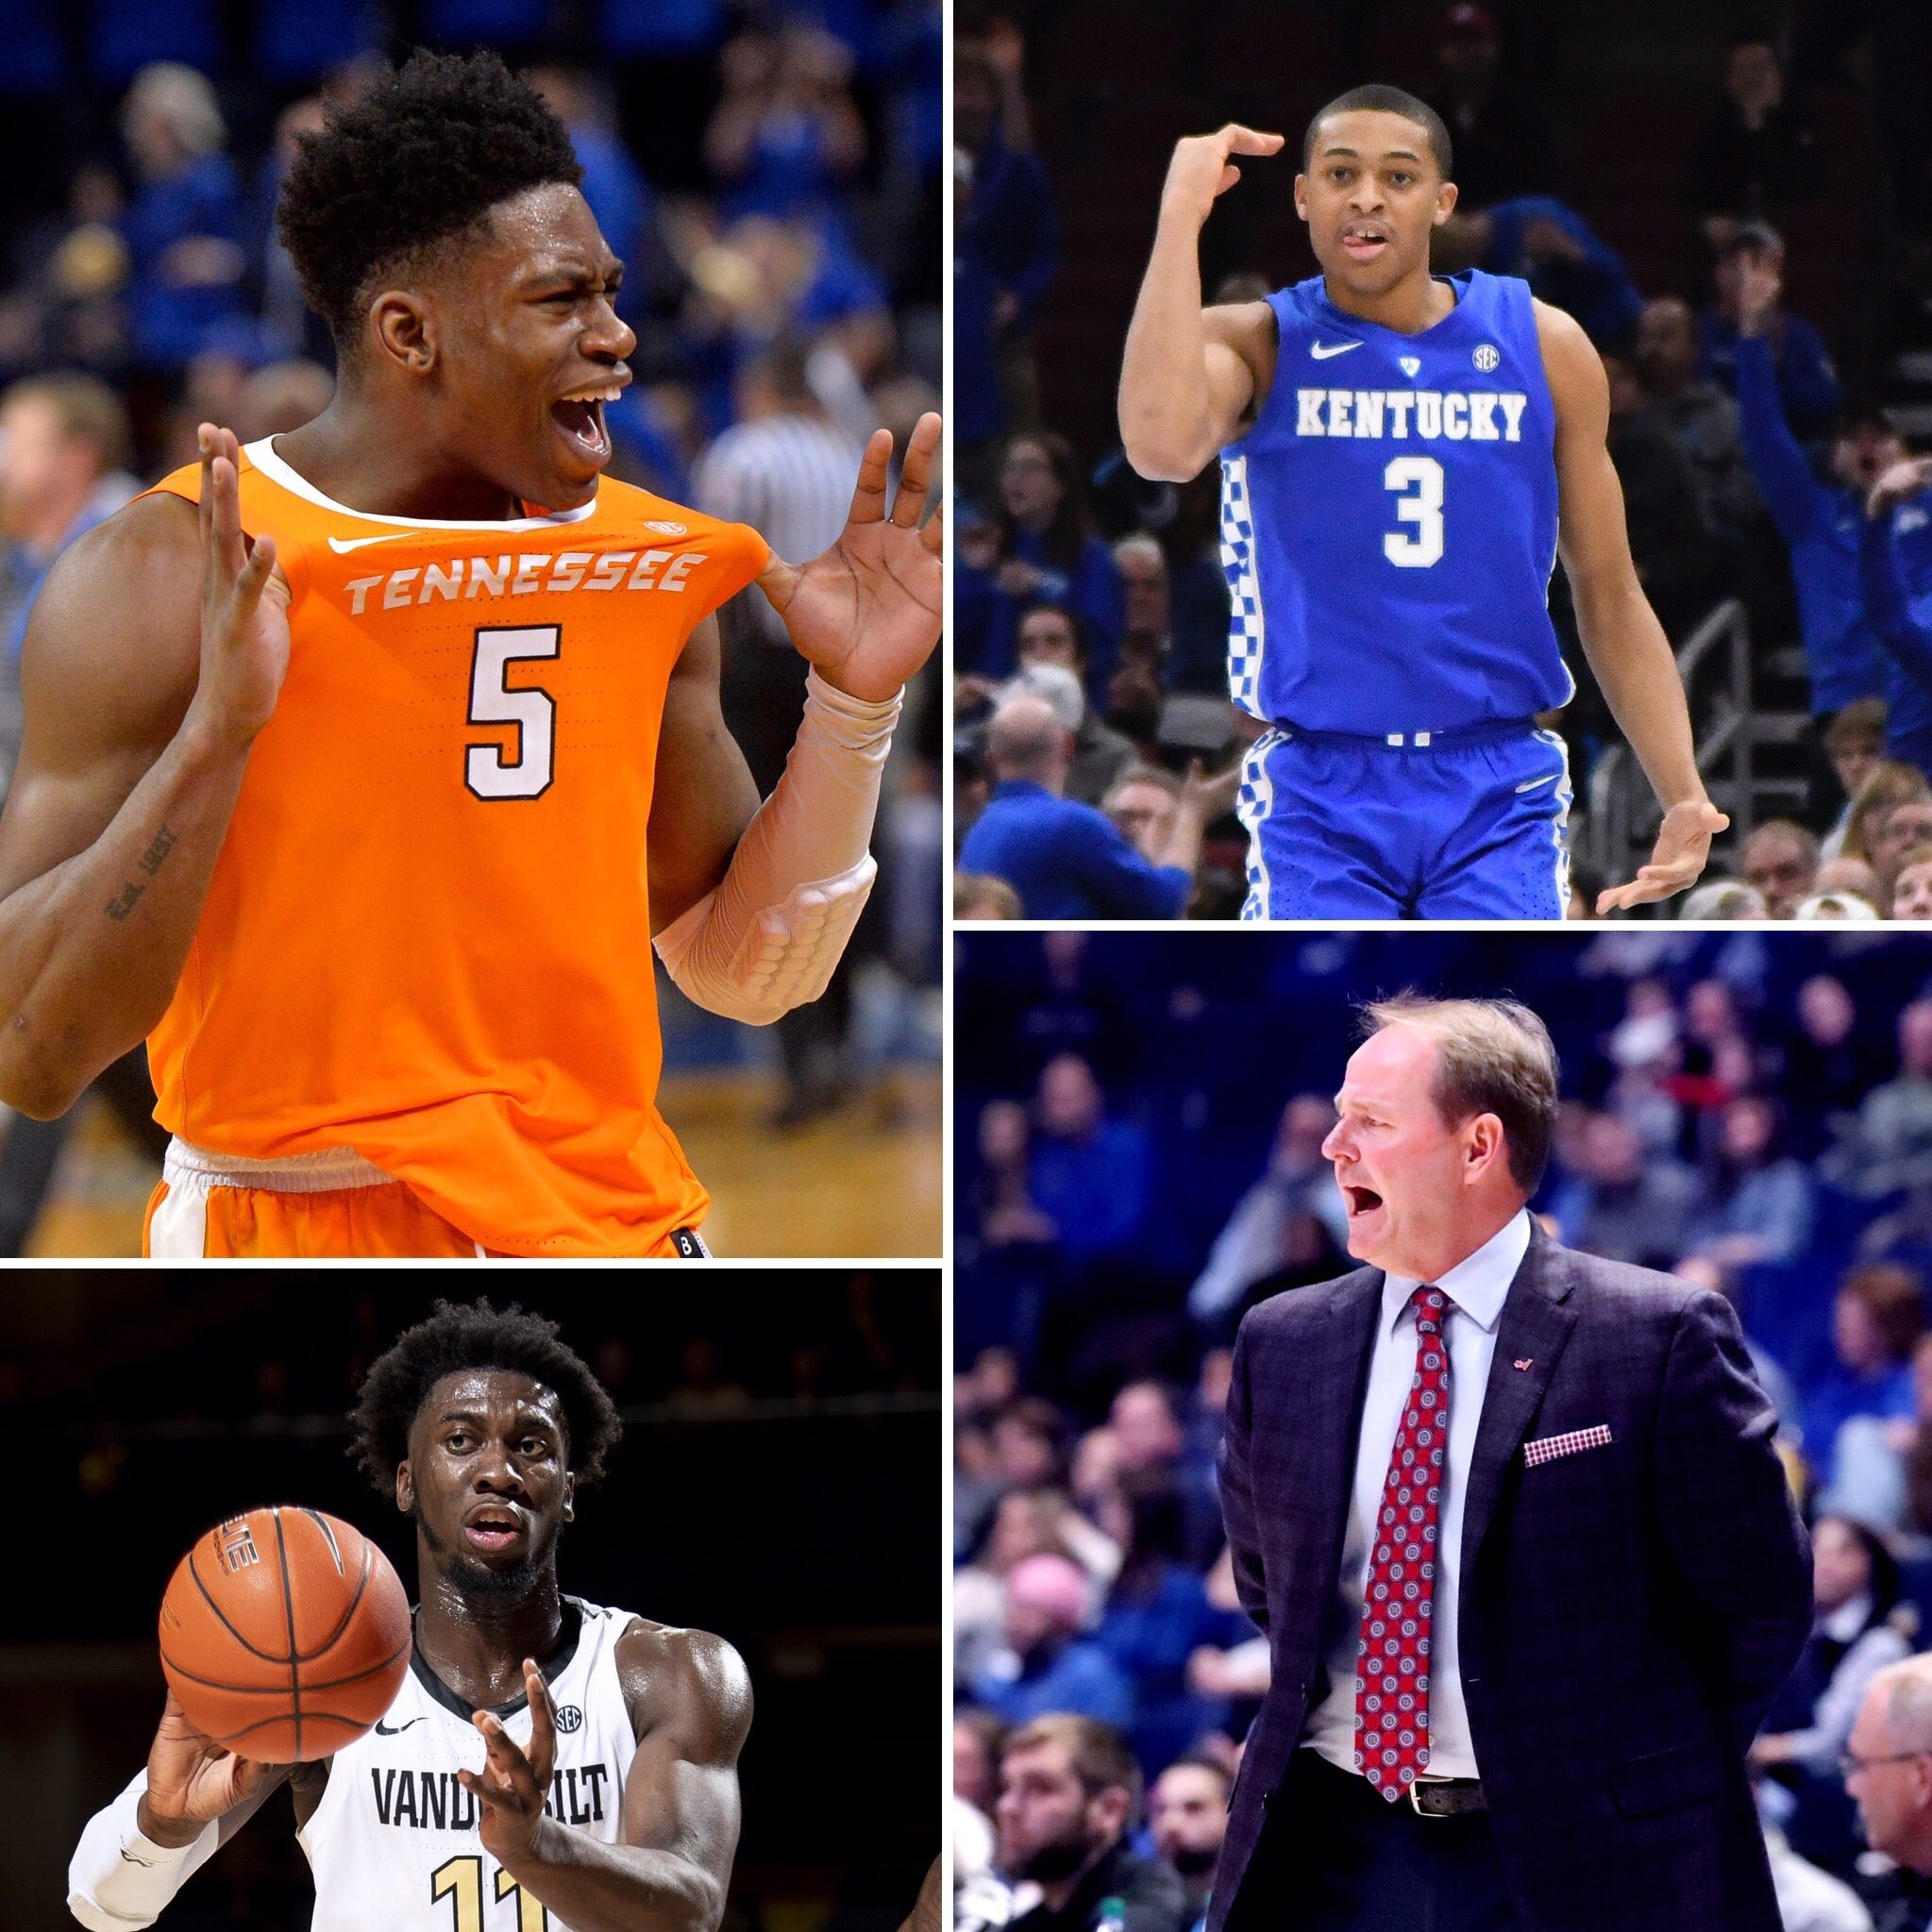 2019 SEC men's basketball tournament schedule, ticket information, TV coverage